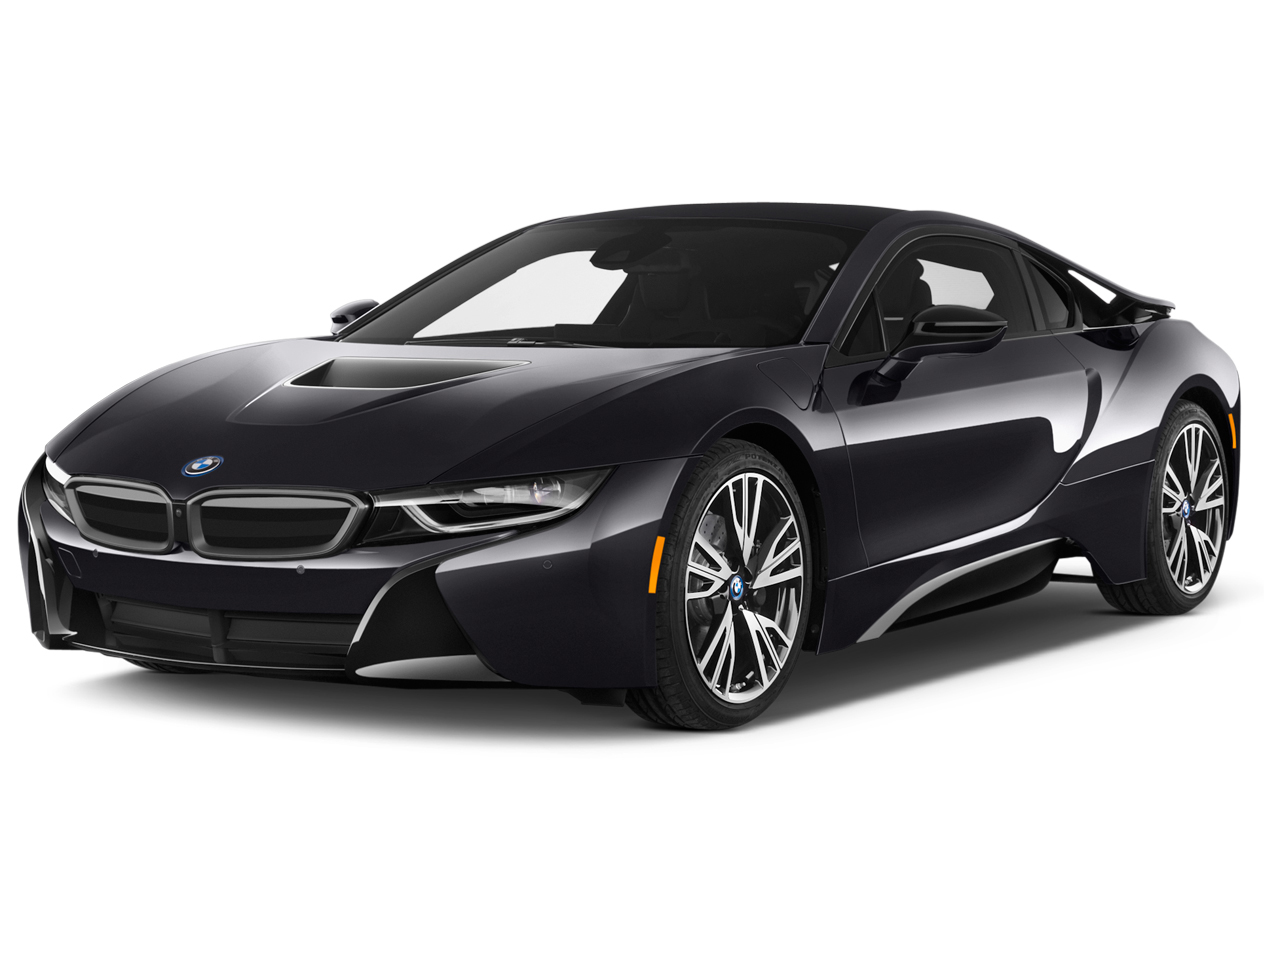 Bmw I8 Price In Qatar New Bmw I8 Photos And Specs Yallamotor